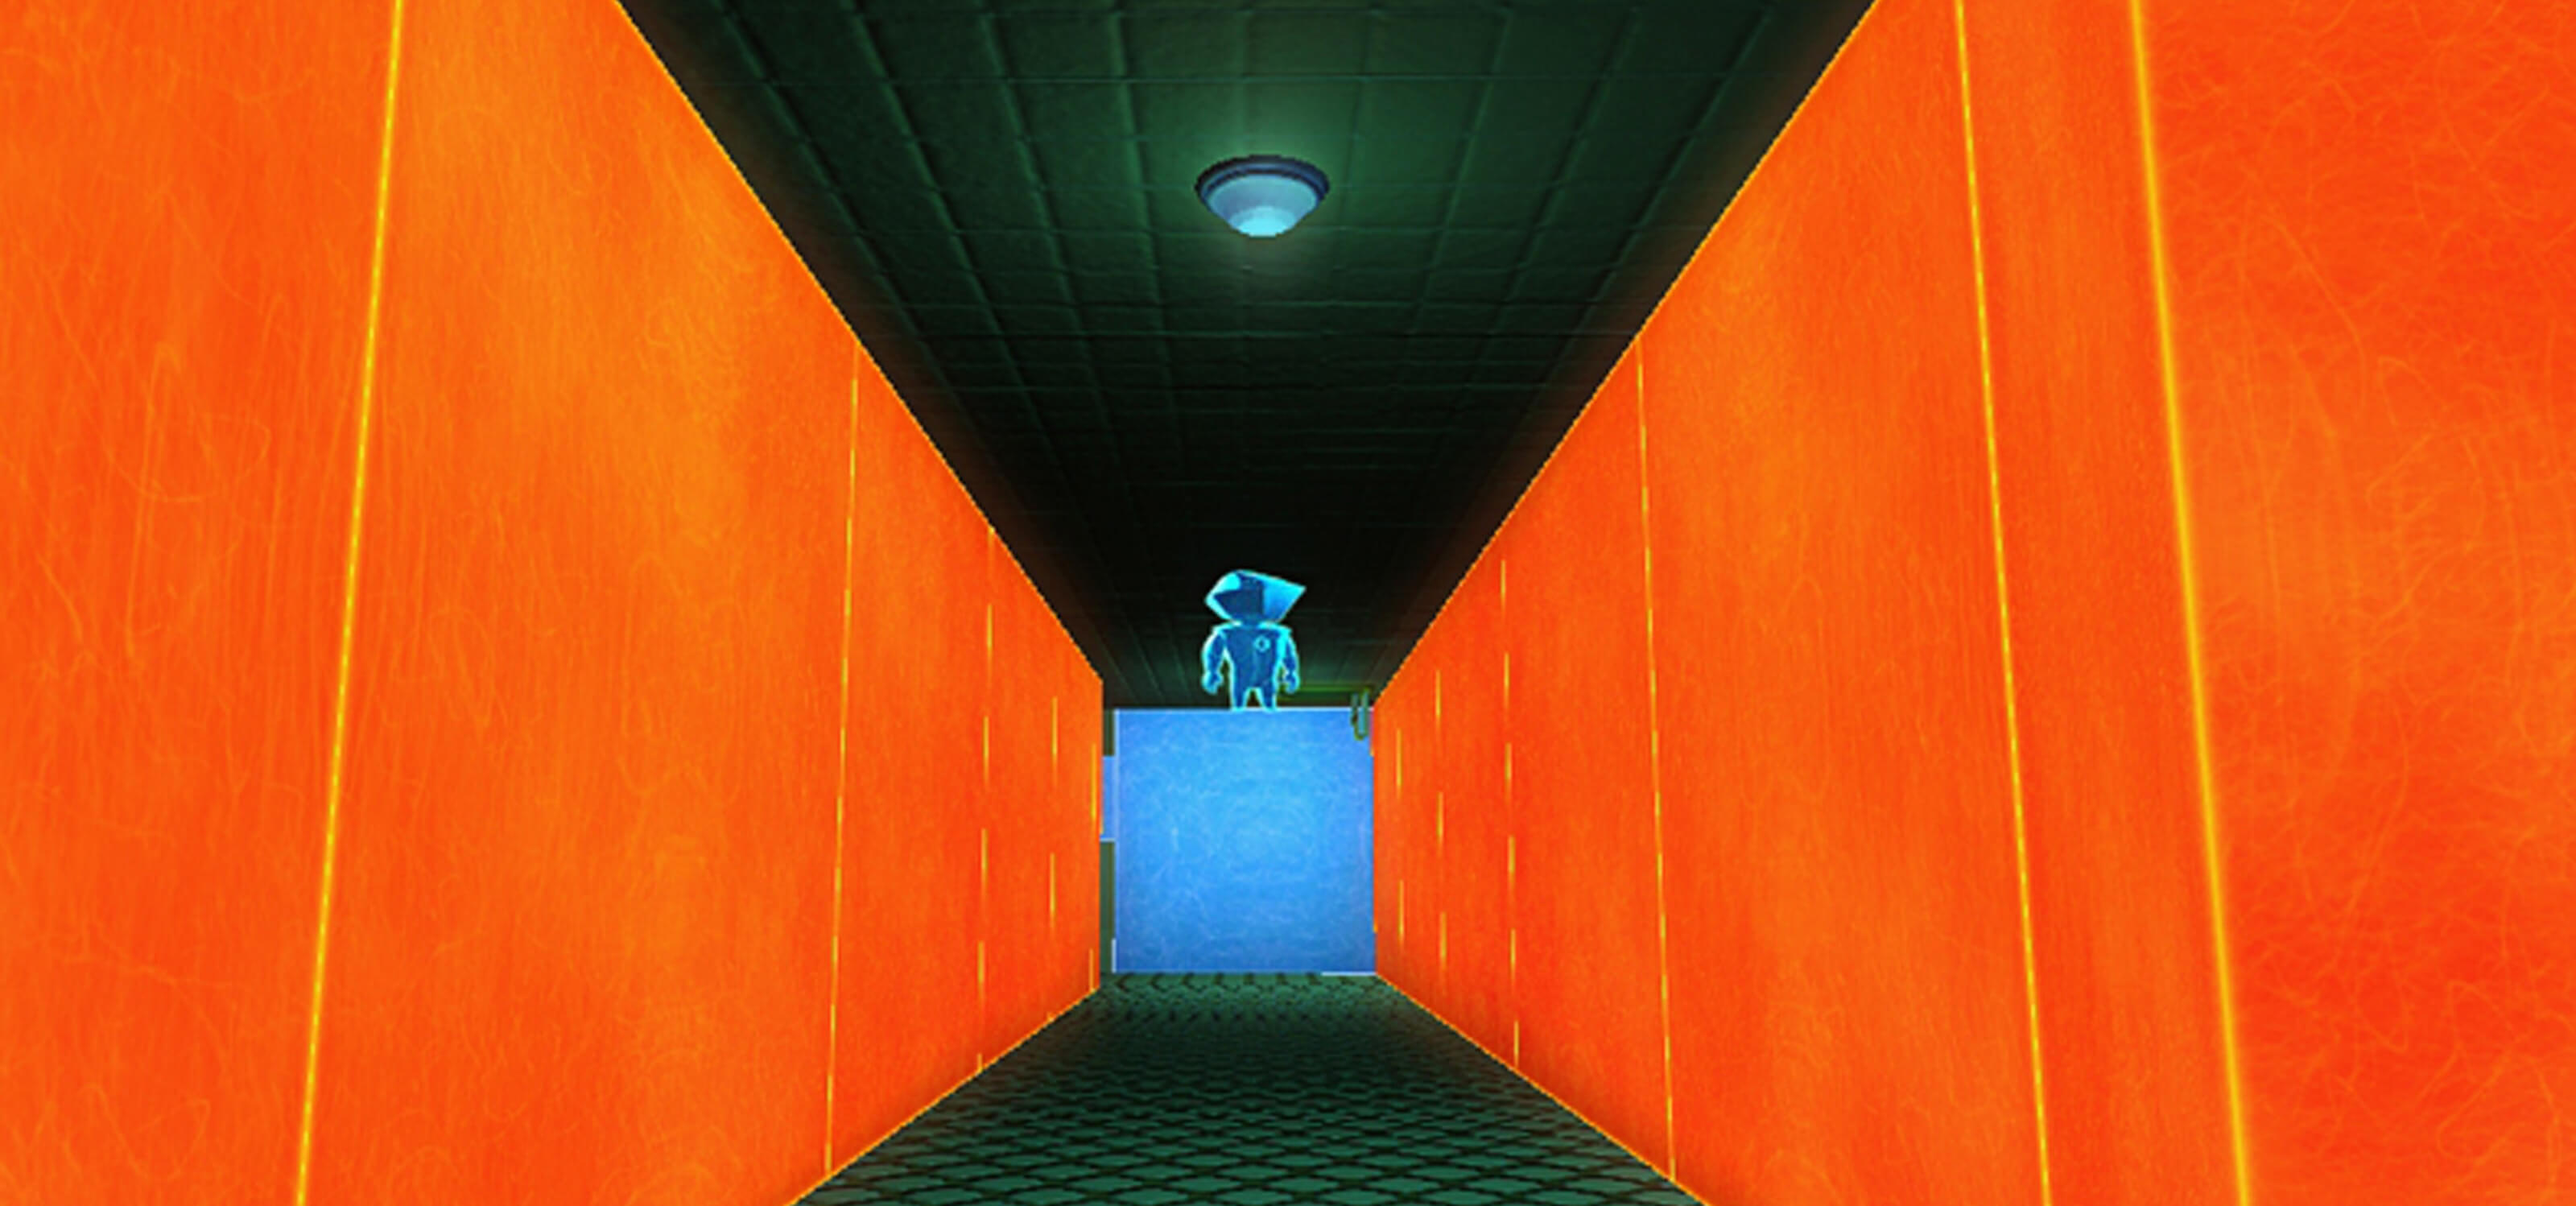 Screenshot from DigiPen student game Perspective of a character gazing down an orange-walled hallway